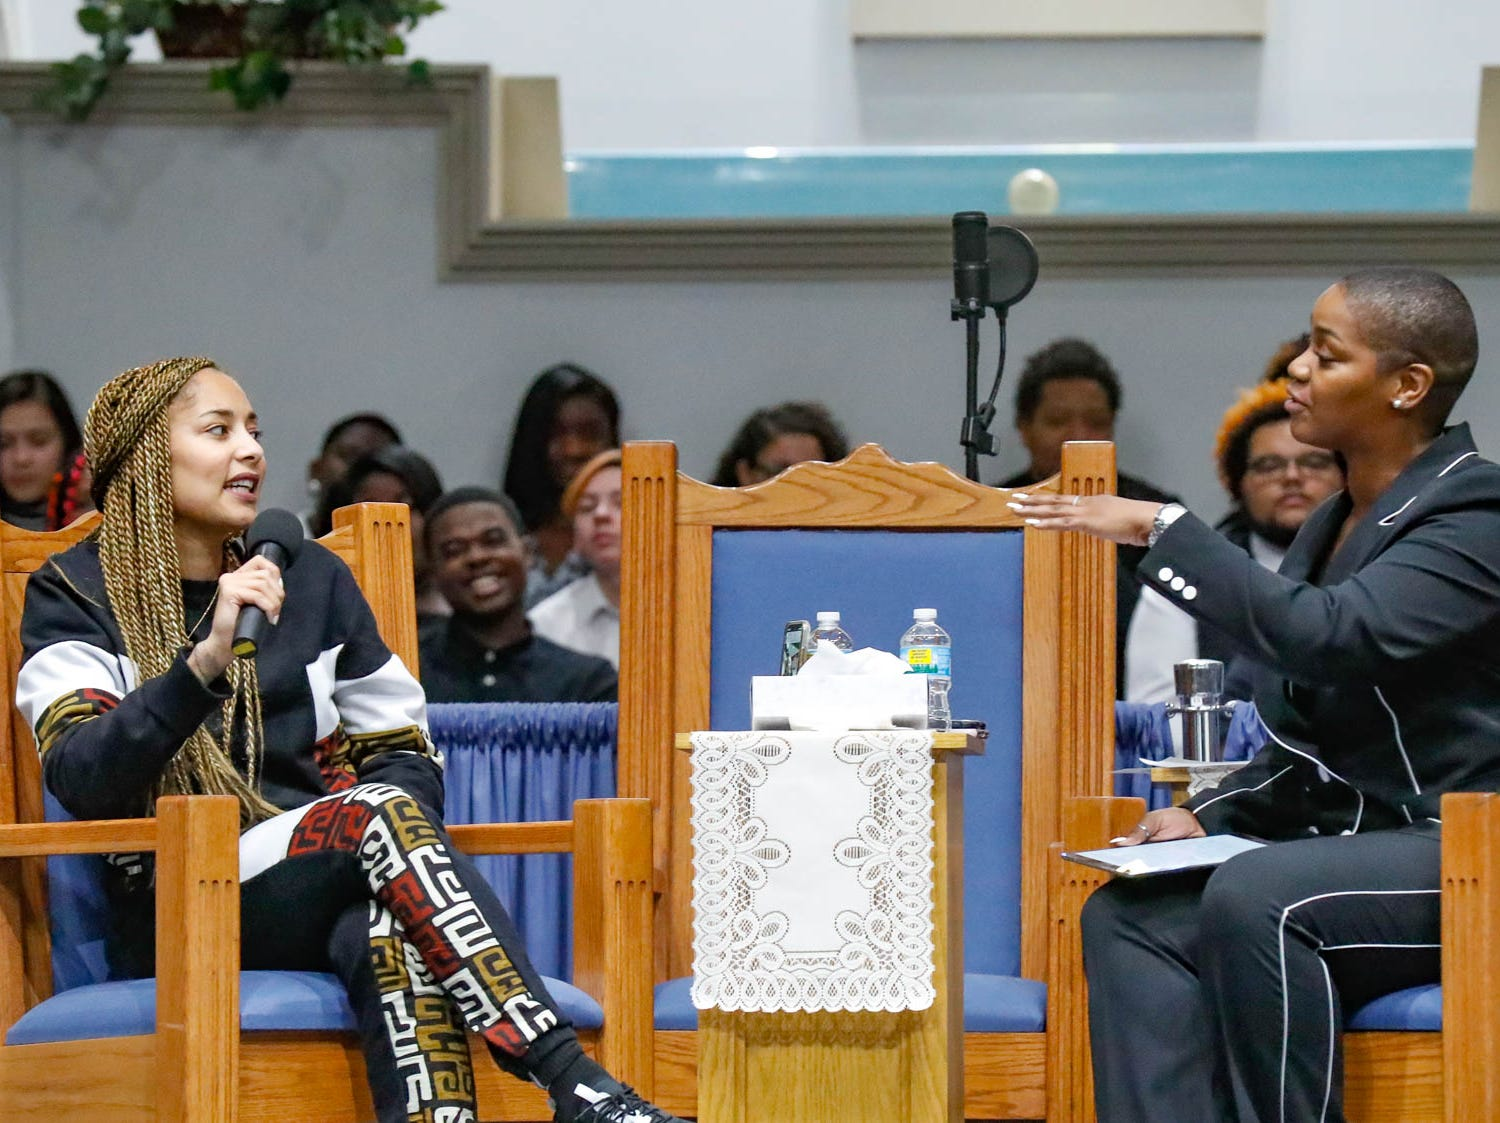 """American comedian, actress, disc jockey (DJ), recording artist and radio personality, Amanda Seales, left, and Section Chief of OFAN, Courtney Mack, right, have a frank discussion for children during the annual Steward Speakers Lecture Series event, held at Olivet Missionary Baptist Church in Indianapolis on Thursday, Feb. 21, 2019. This years theme was """"Year of the woman""""."""